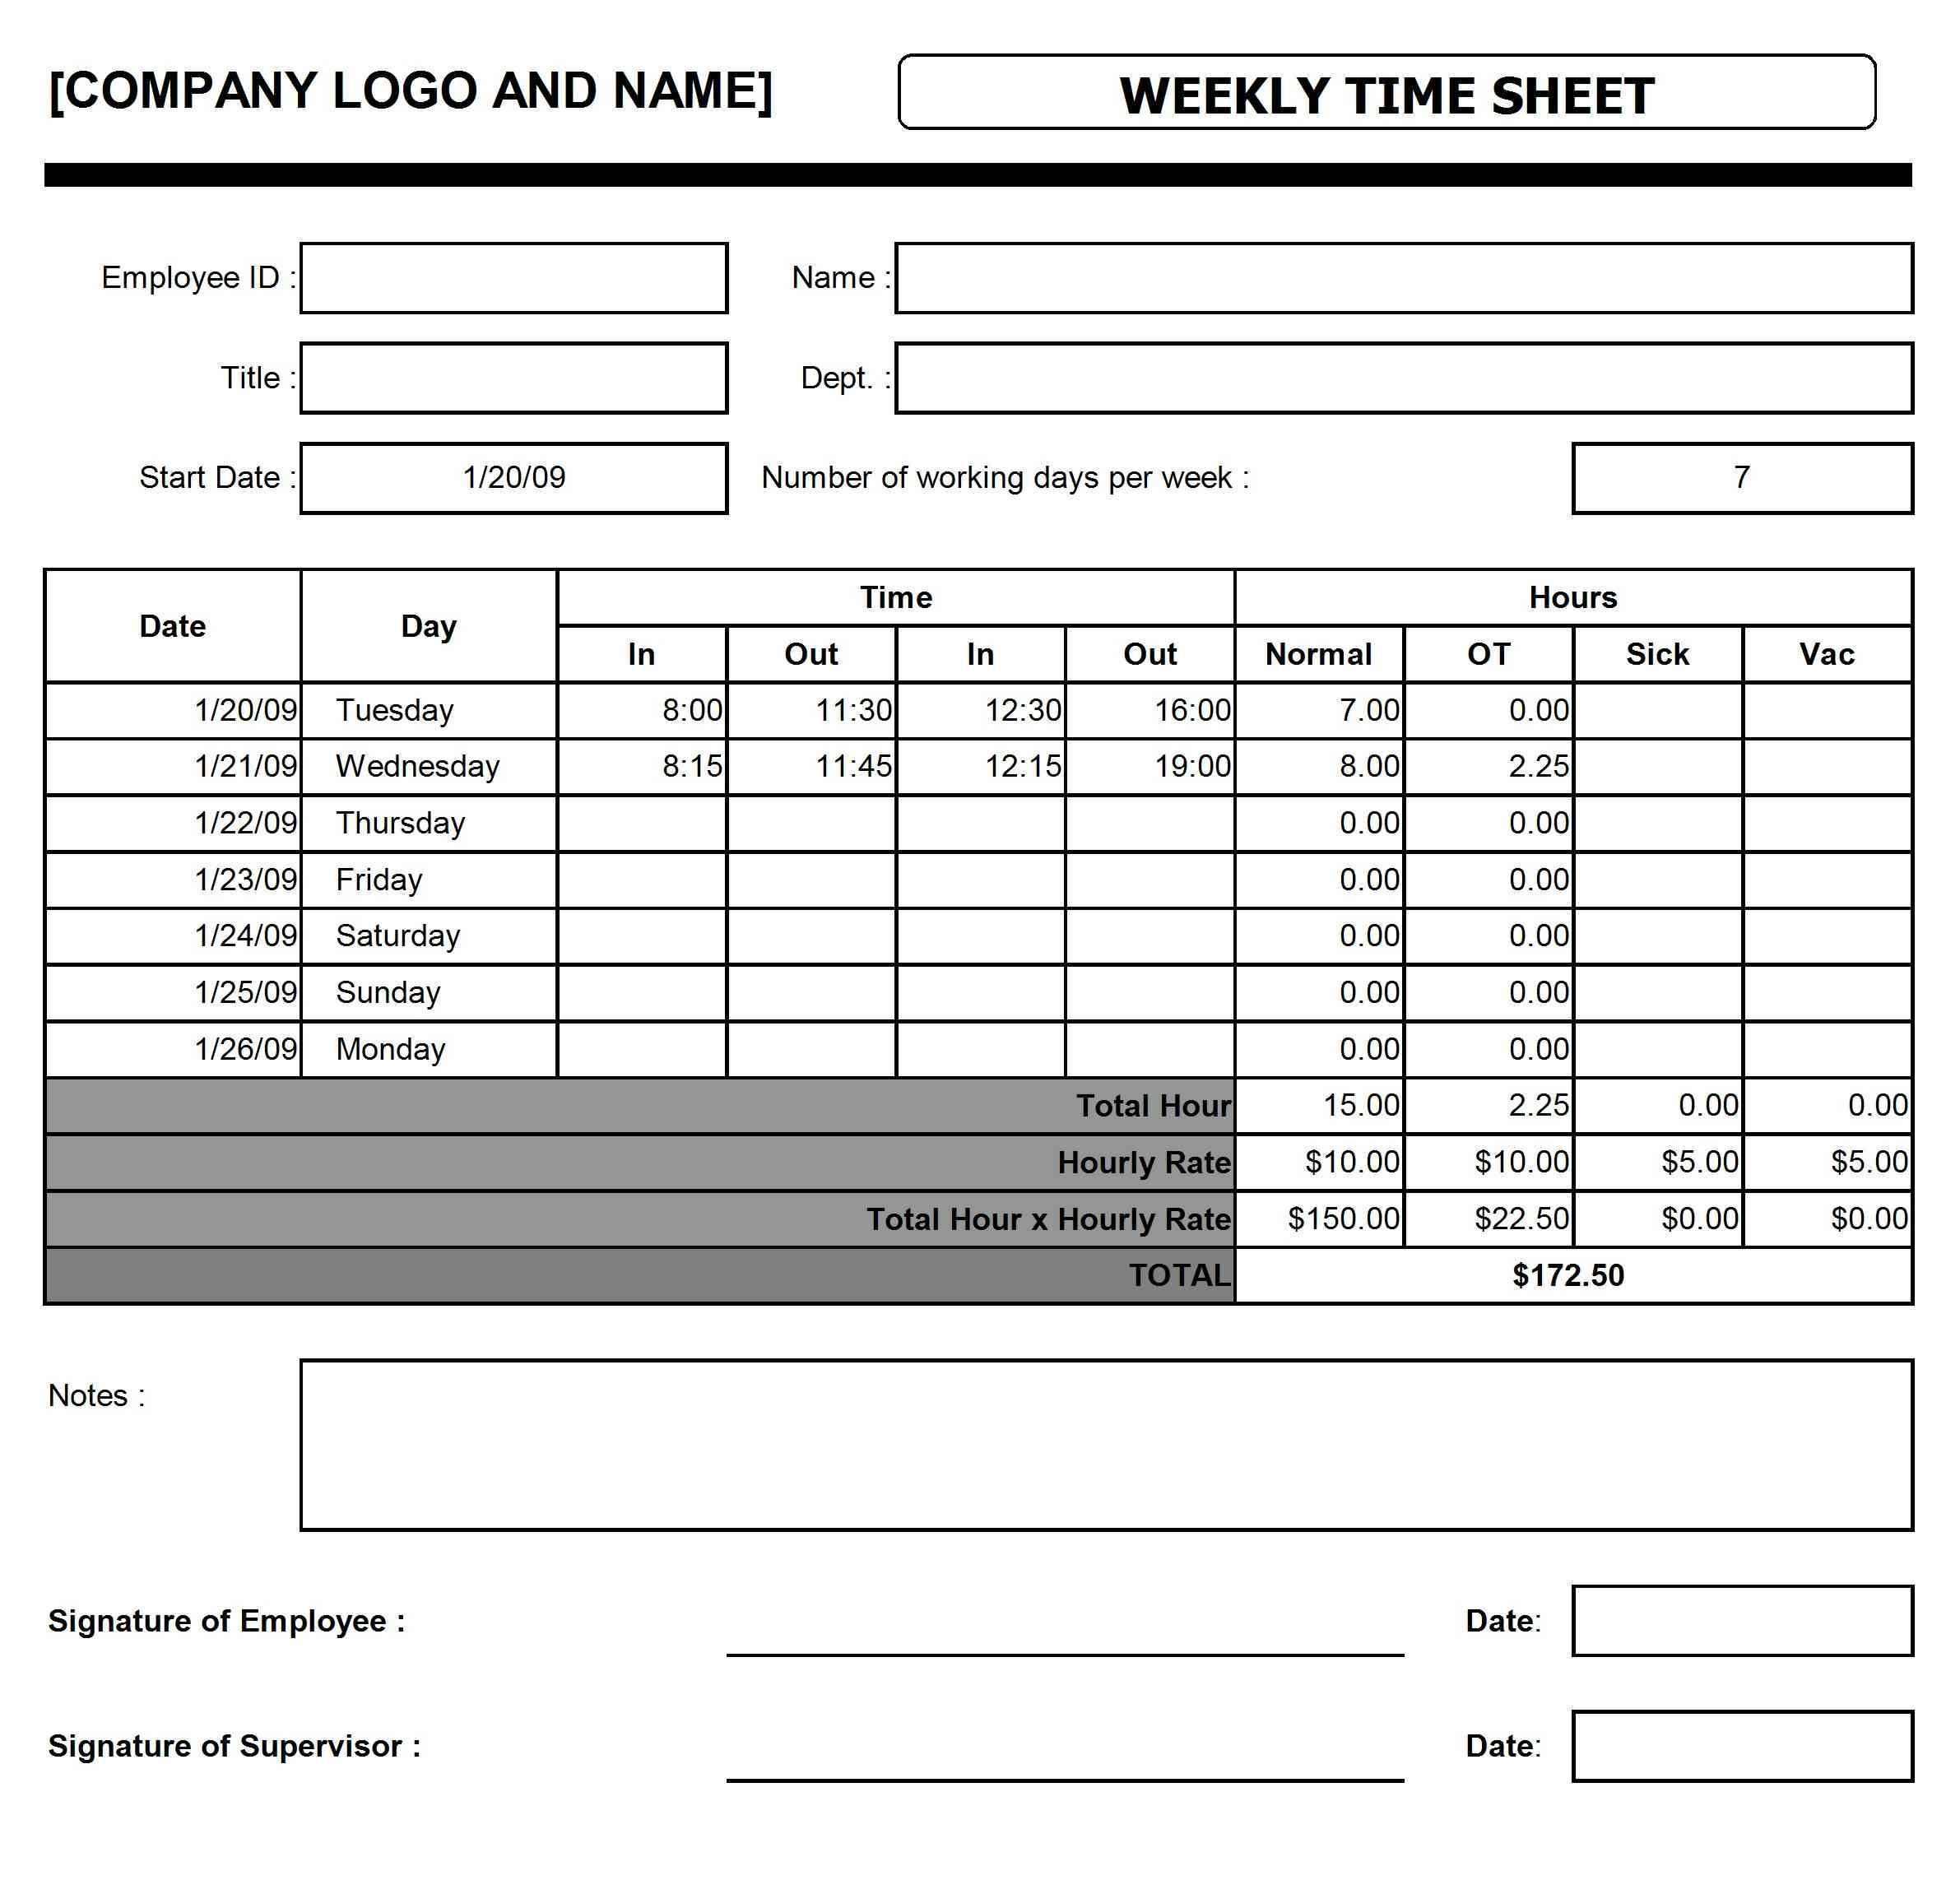 Weekly-Time-Sheet